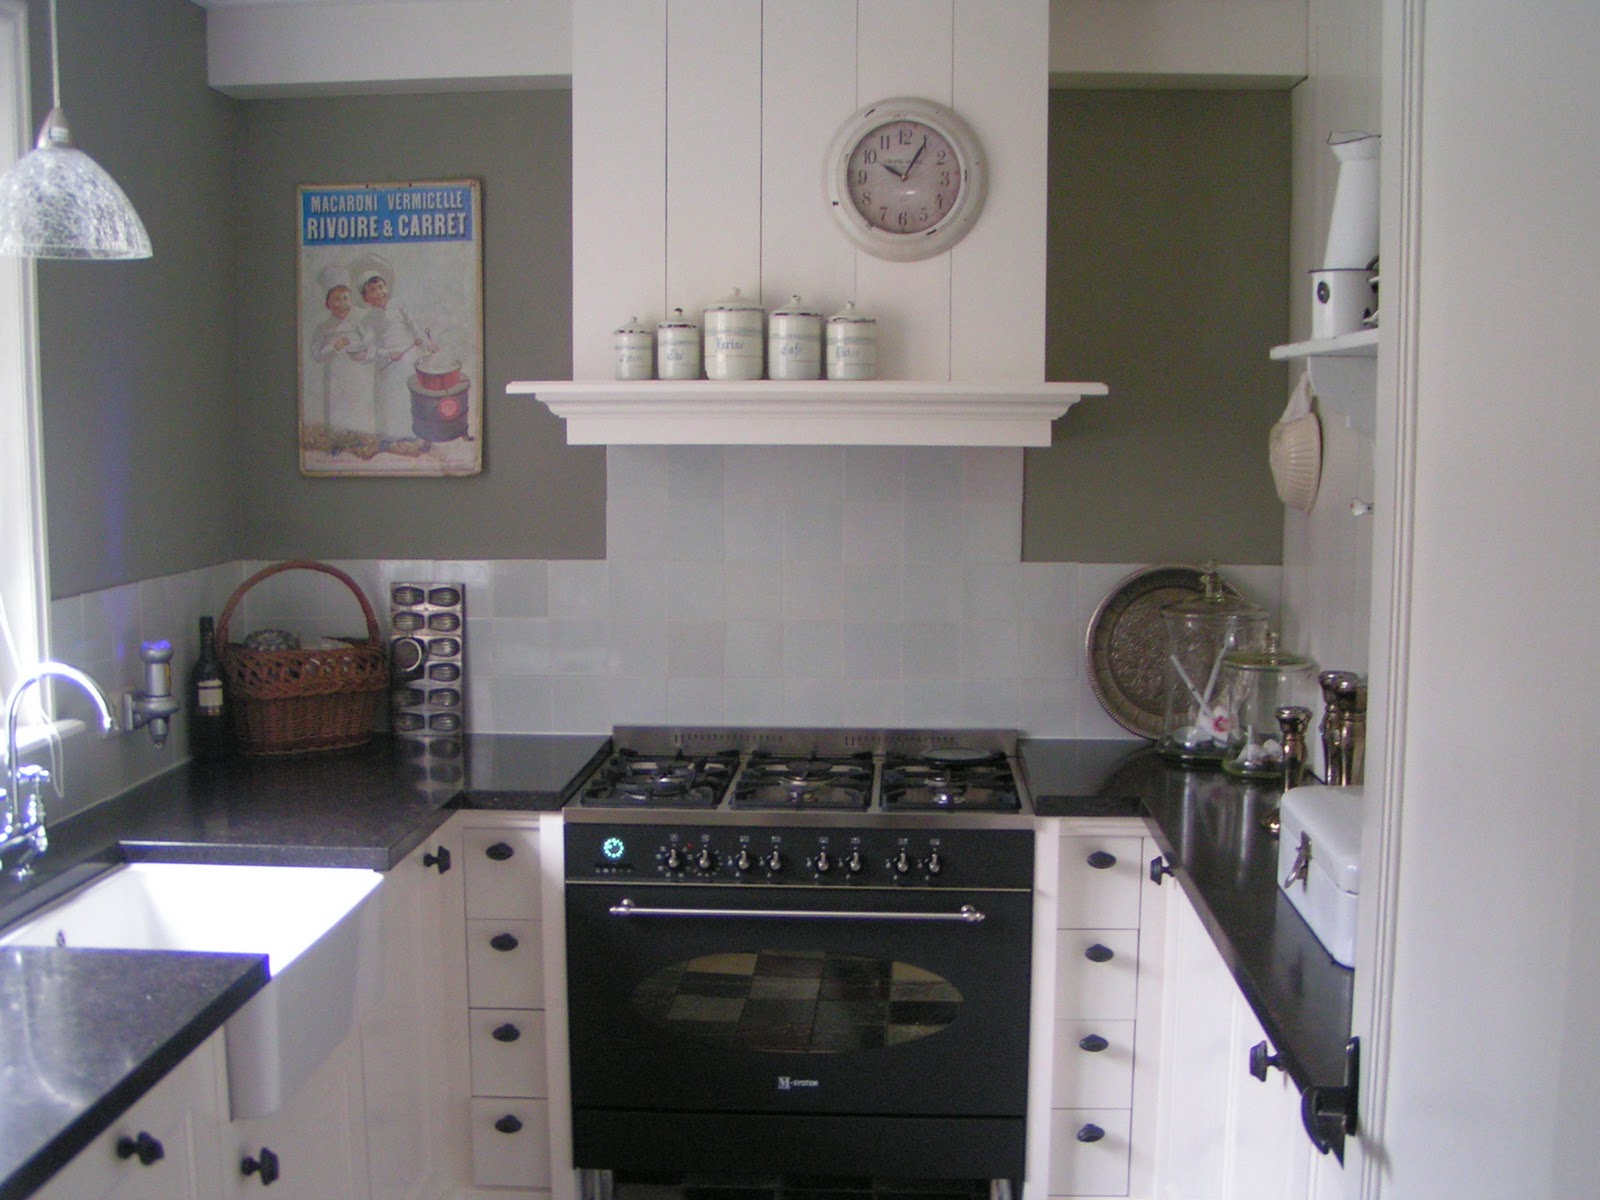 Brocante Keuken Pinterest : nice small kitchen forward brocante kitchen de with brocante ander